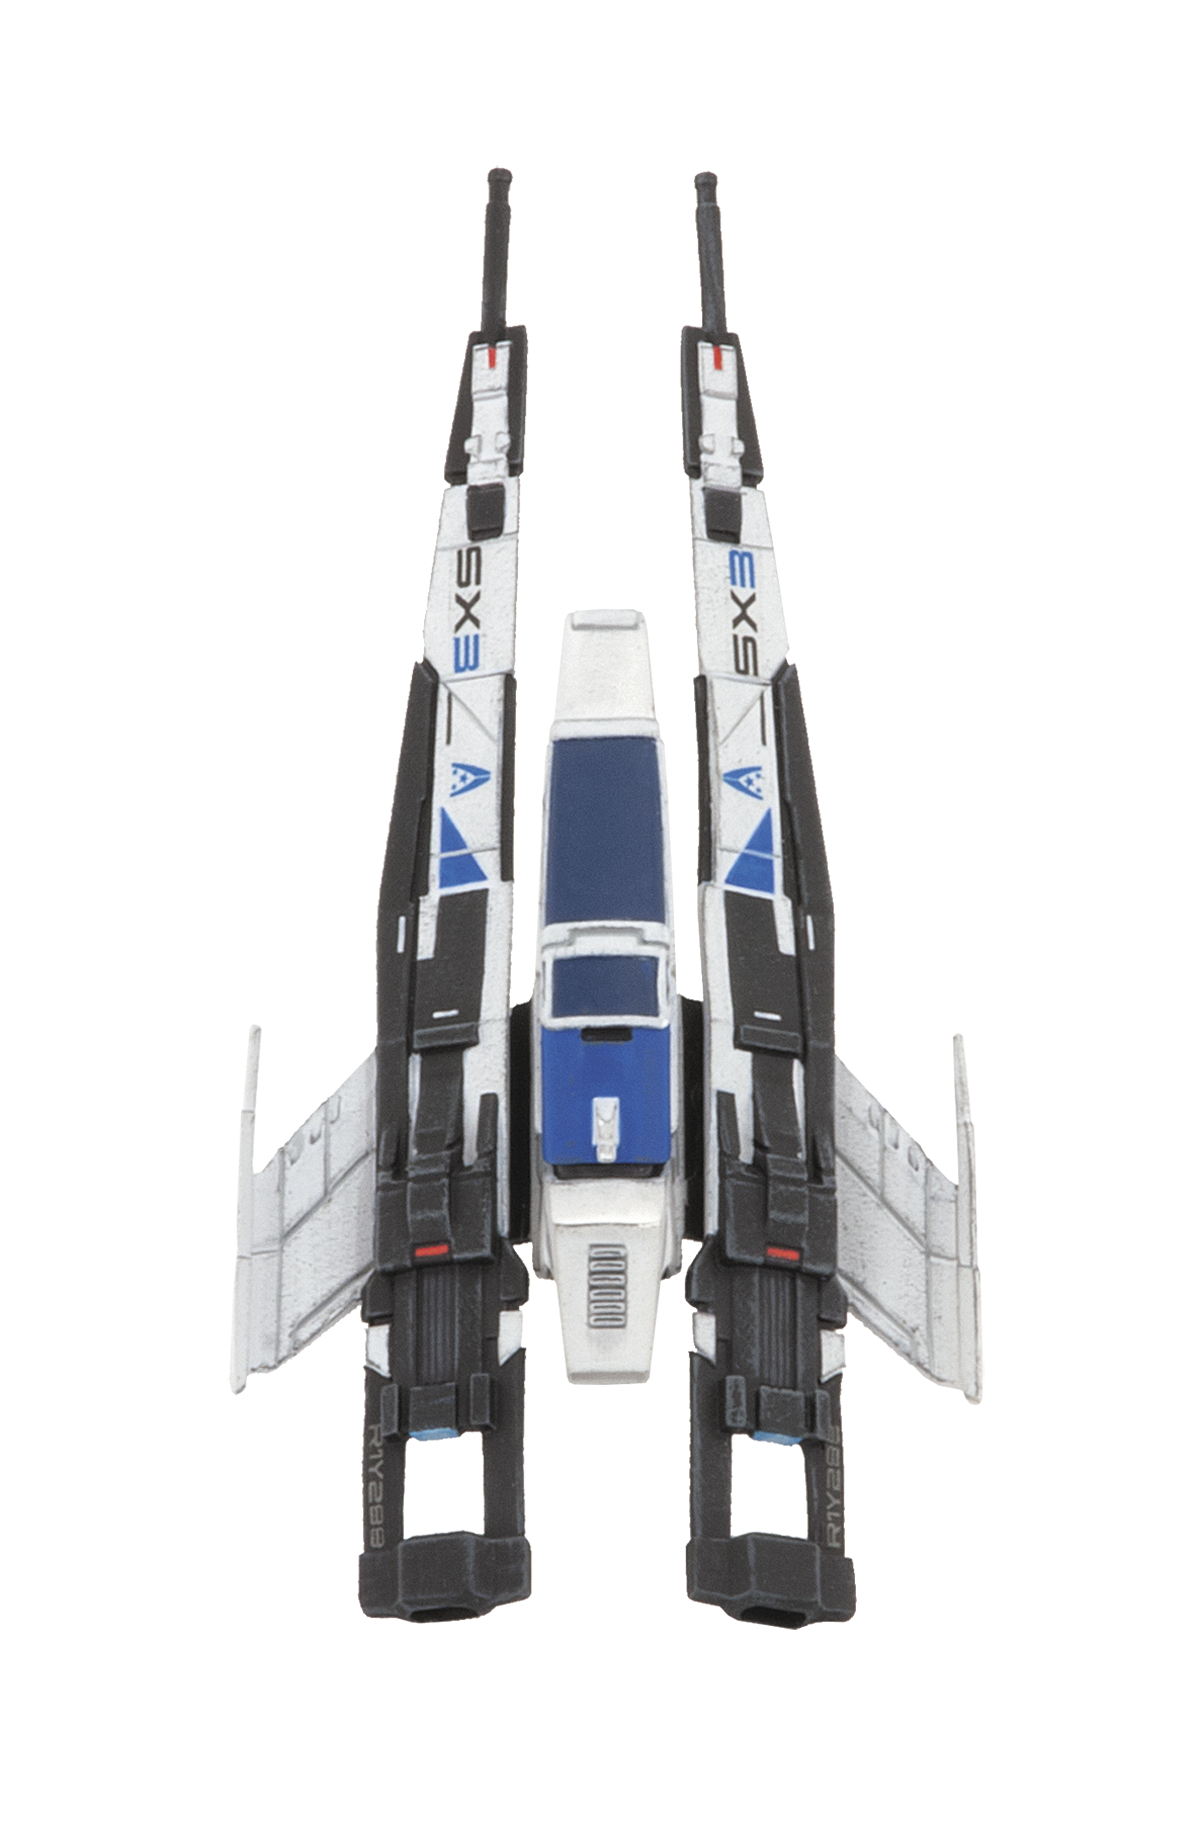 MASS EFFECT SX3 ALLIANCE FIGHTER REPLICA